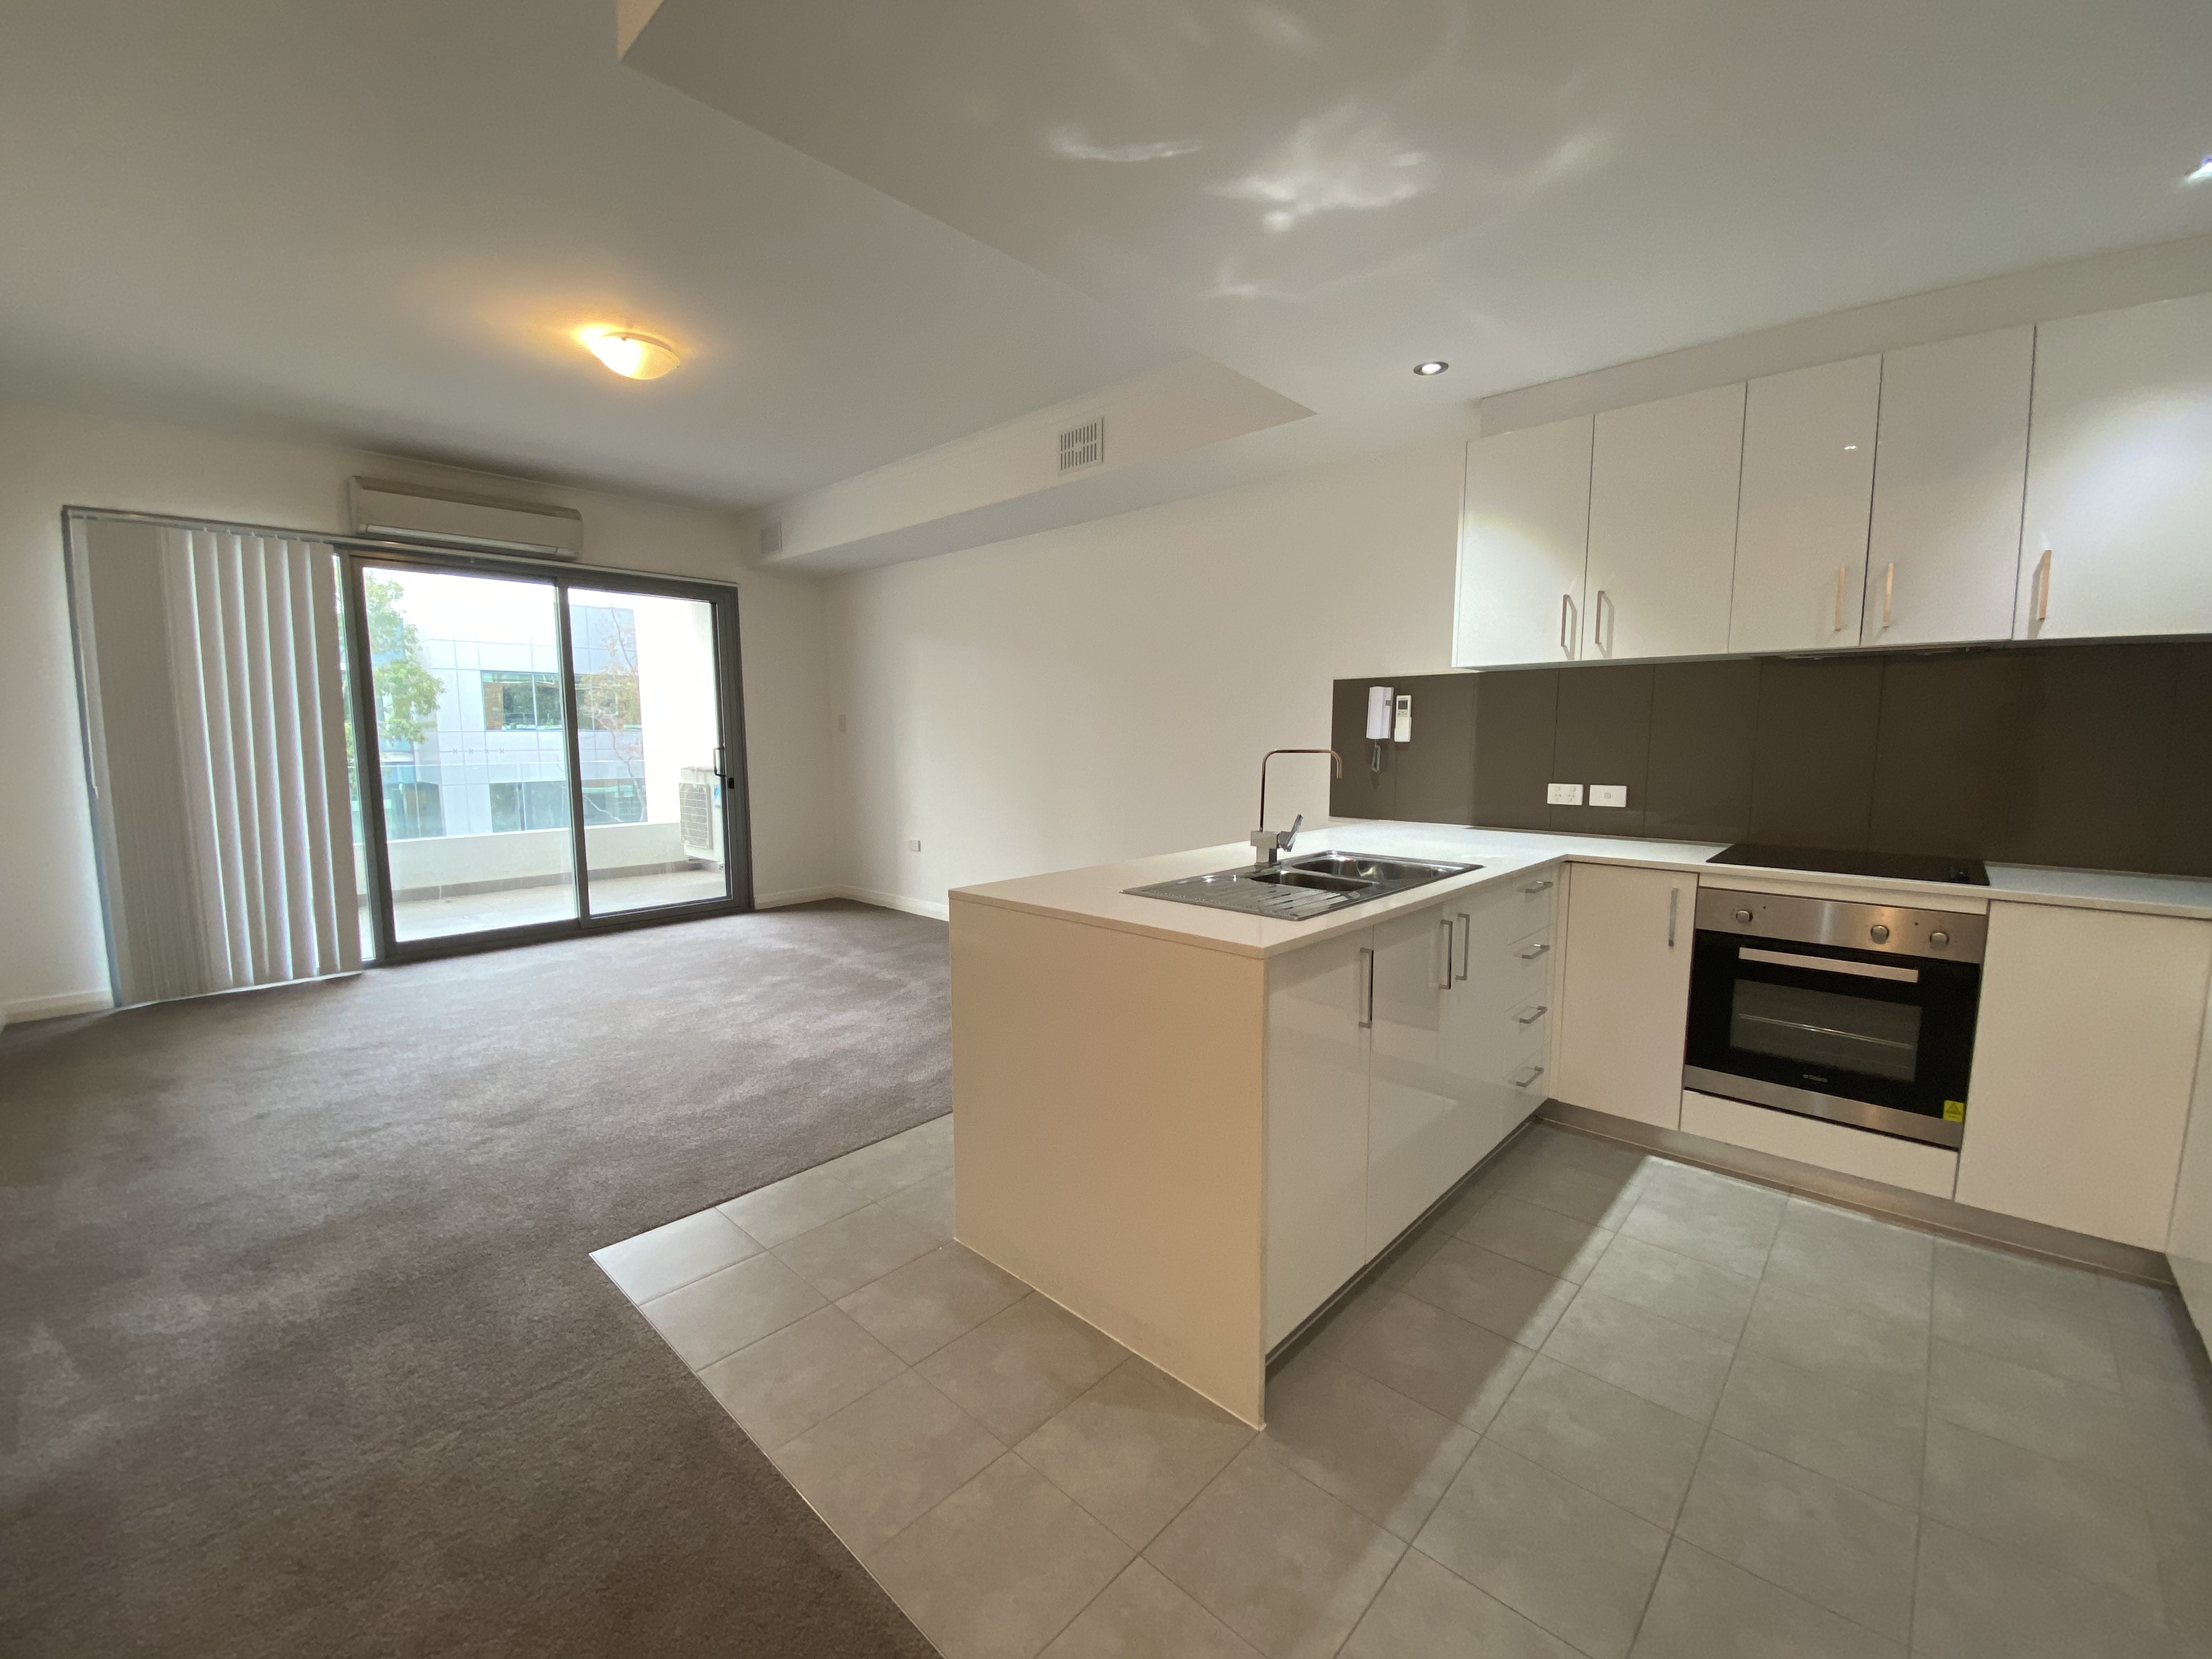 1 x 1 APARTMENT IN VIBRANT LEEDERVILLE